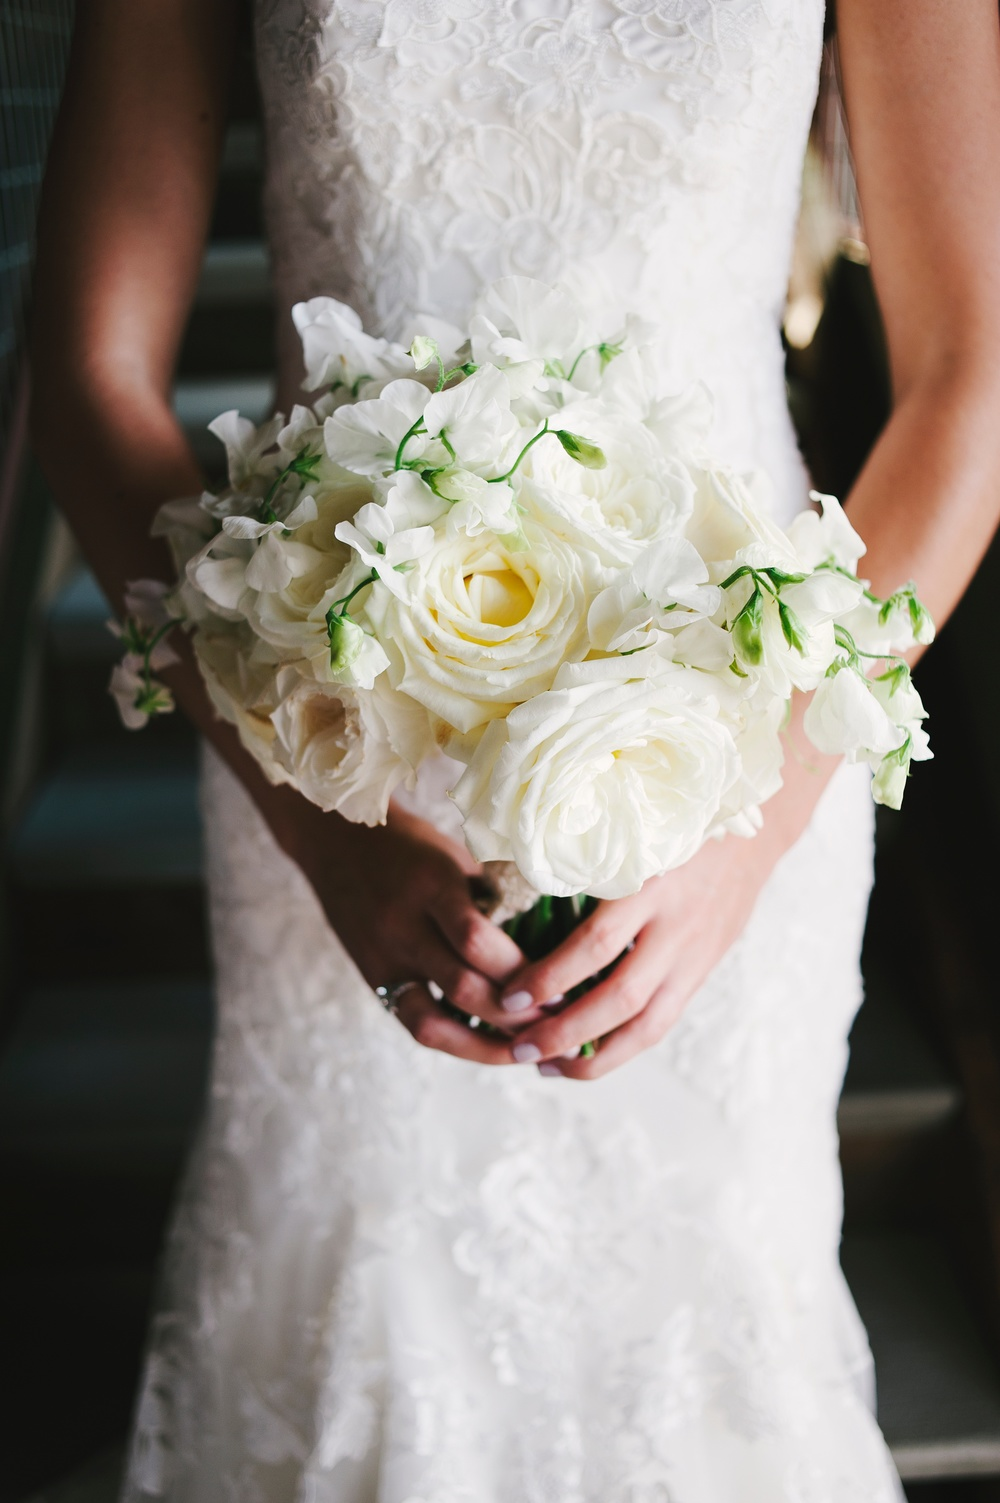 White bridal bouquet sweet peas roses - Olsen Mansion - Studio 3 floral design